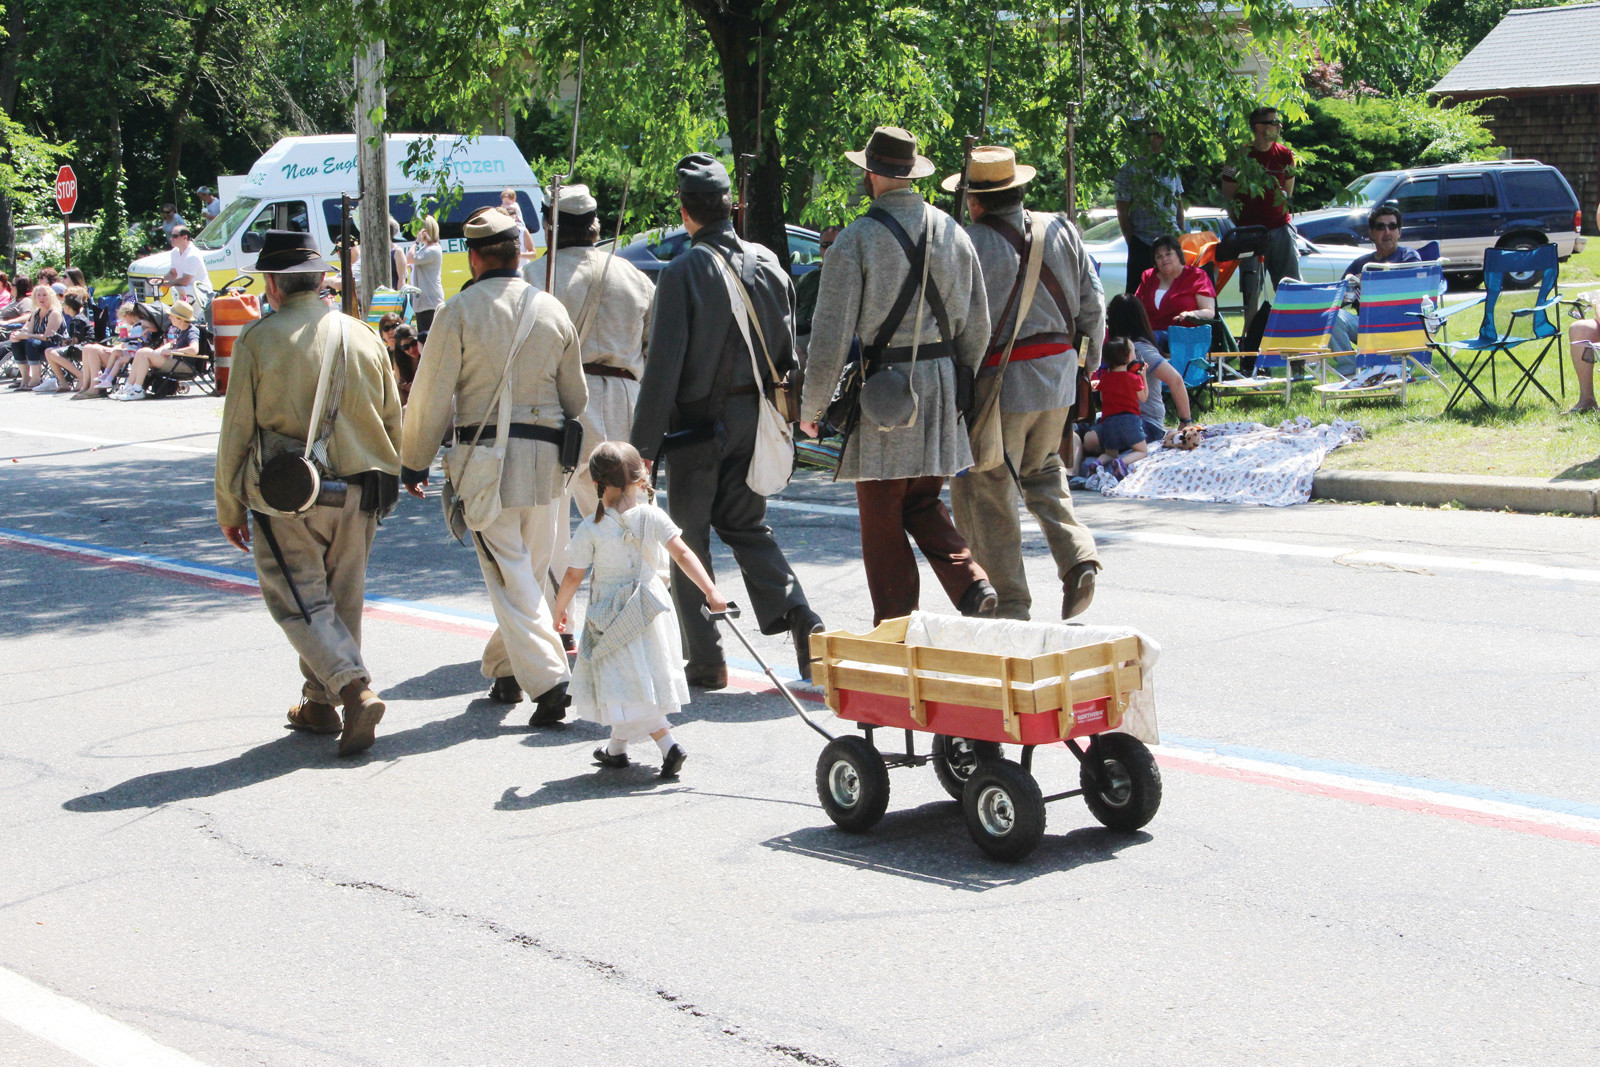 BRINGING UP THE REAR: A wagon was ideal for this young participant to bring along the water for the marching militia.